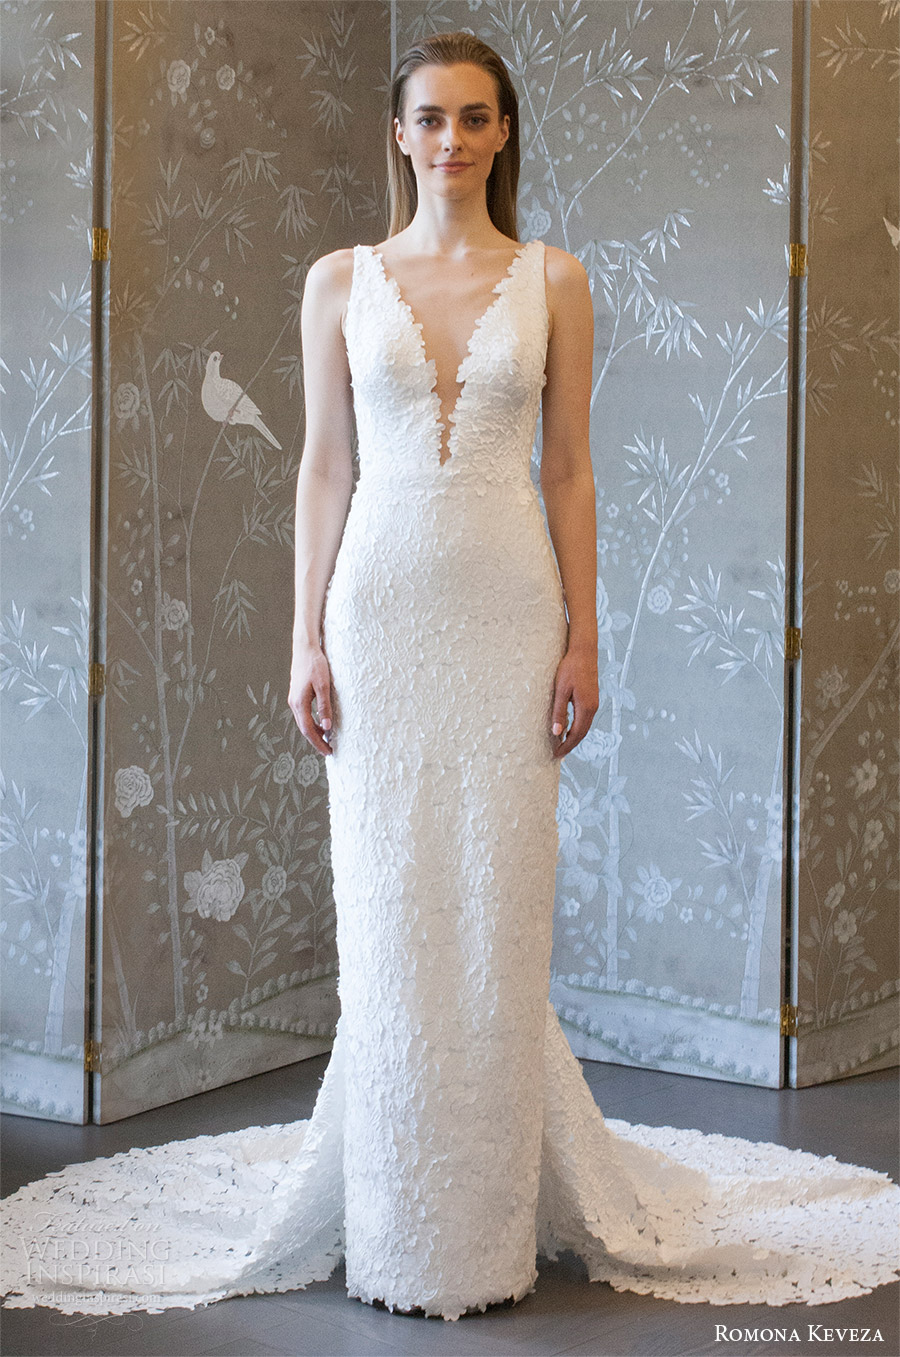 romona keveza spring 2018 bridal sleeveless deep v neck lace sheath wedding dress (rk8406) mv v back elegant chapel train